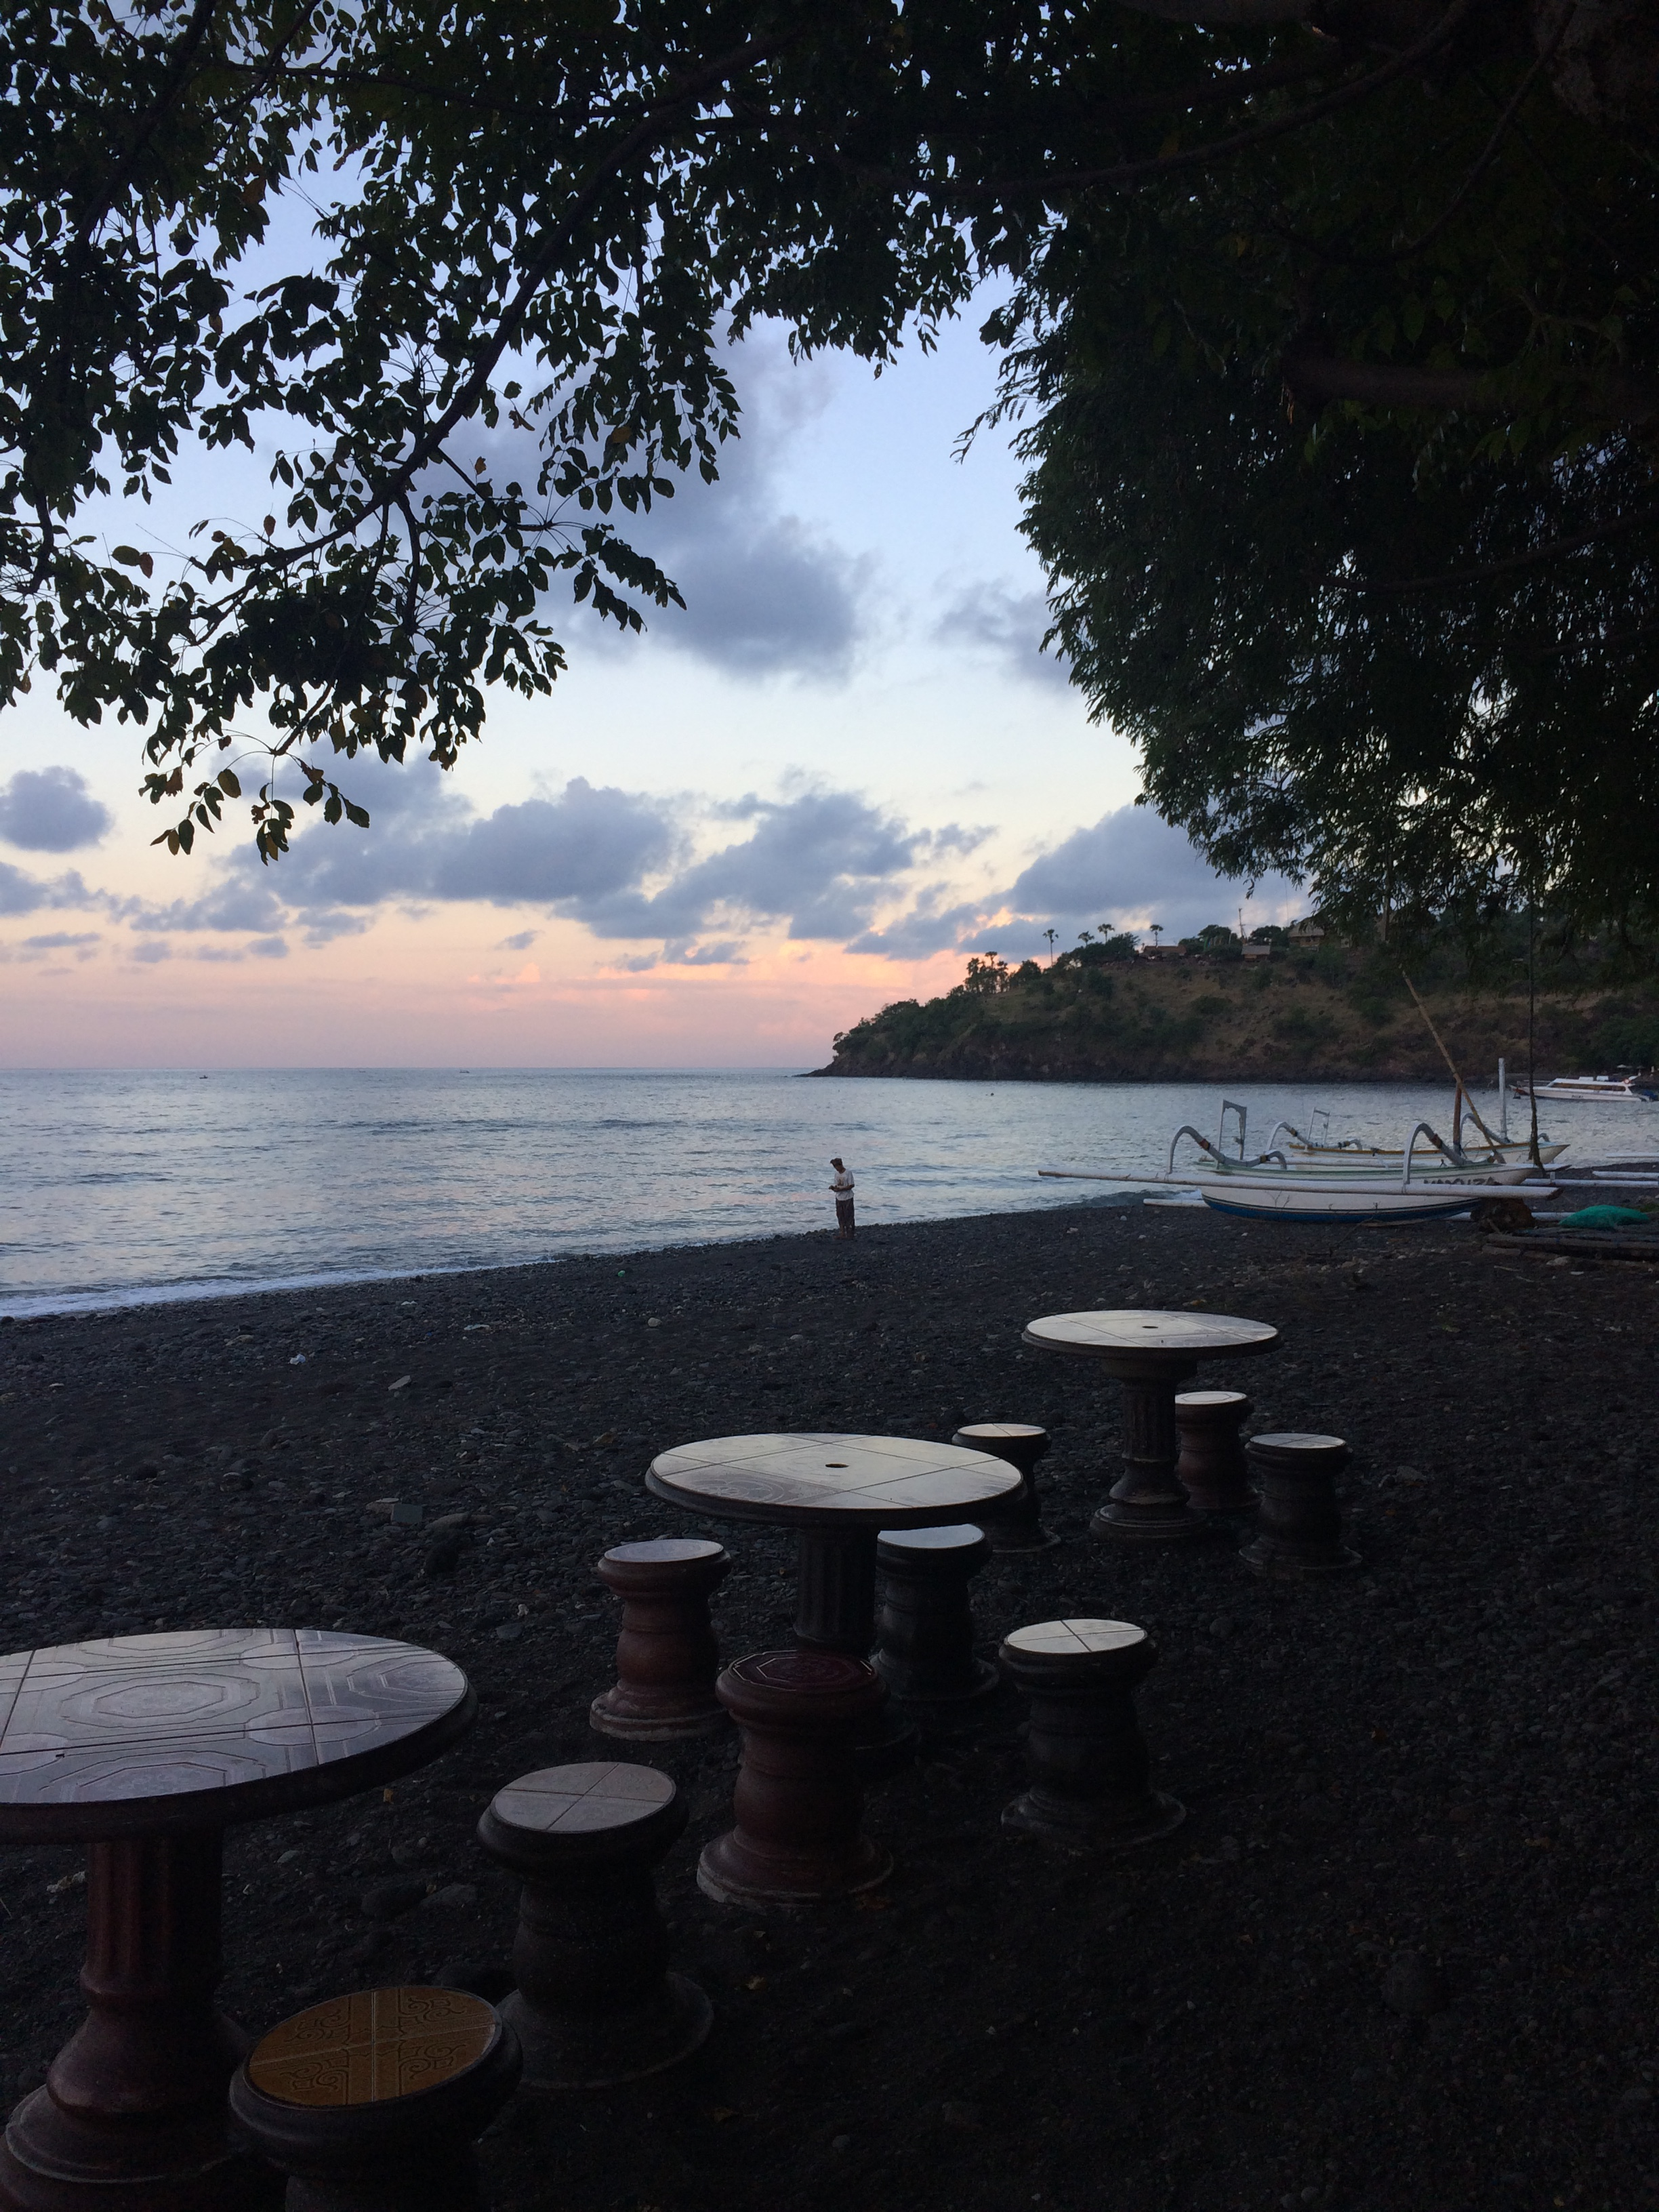 Sunset on Amed's black rock beaches.